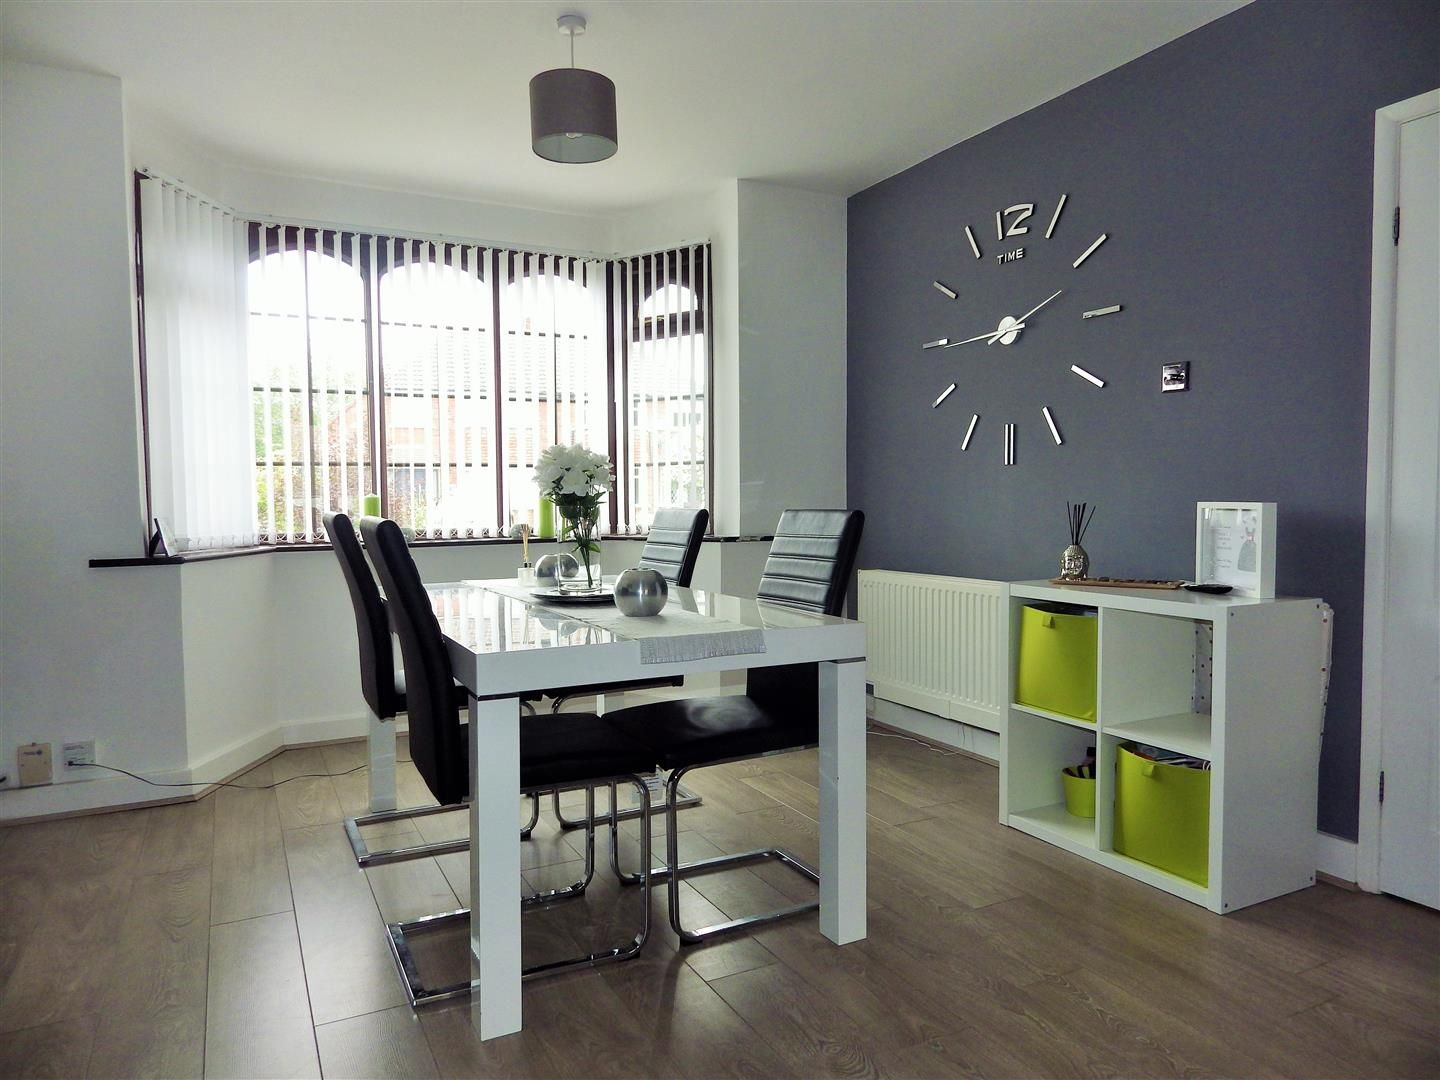 3 bed semi-detached for sale in Hasbury 5